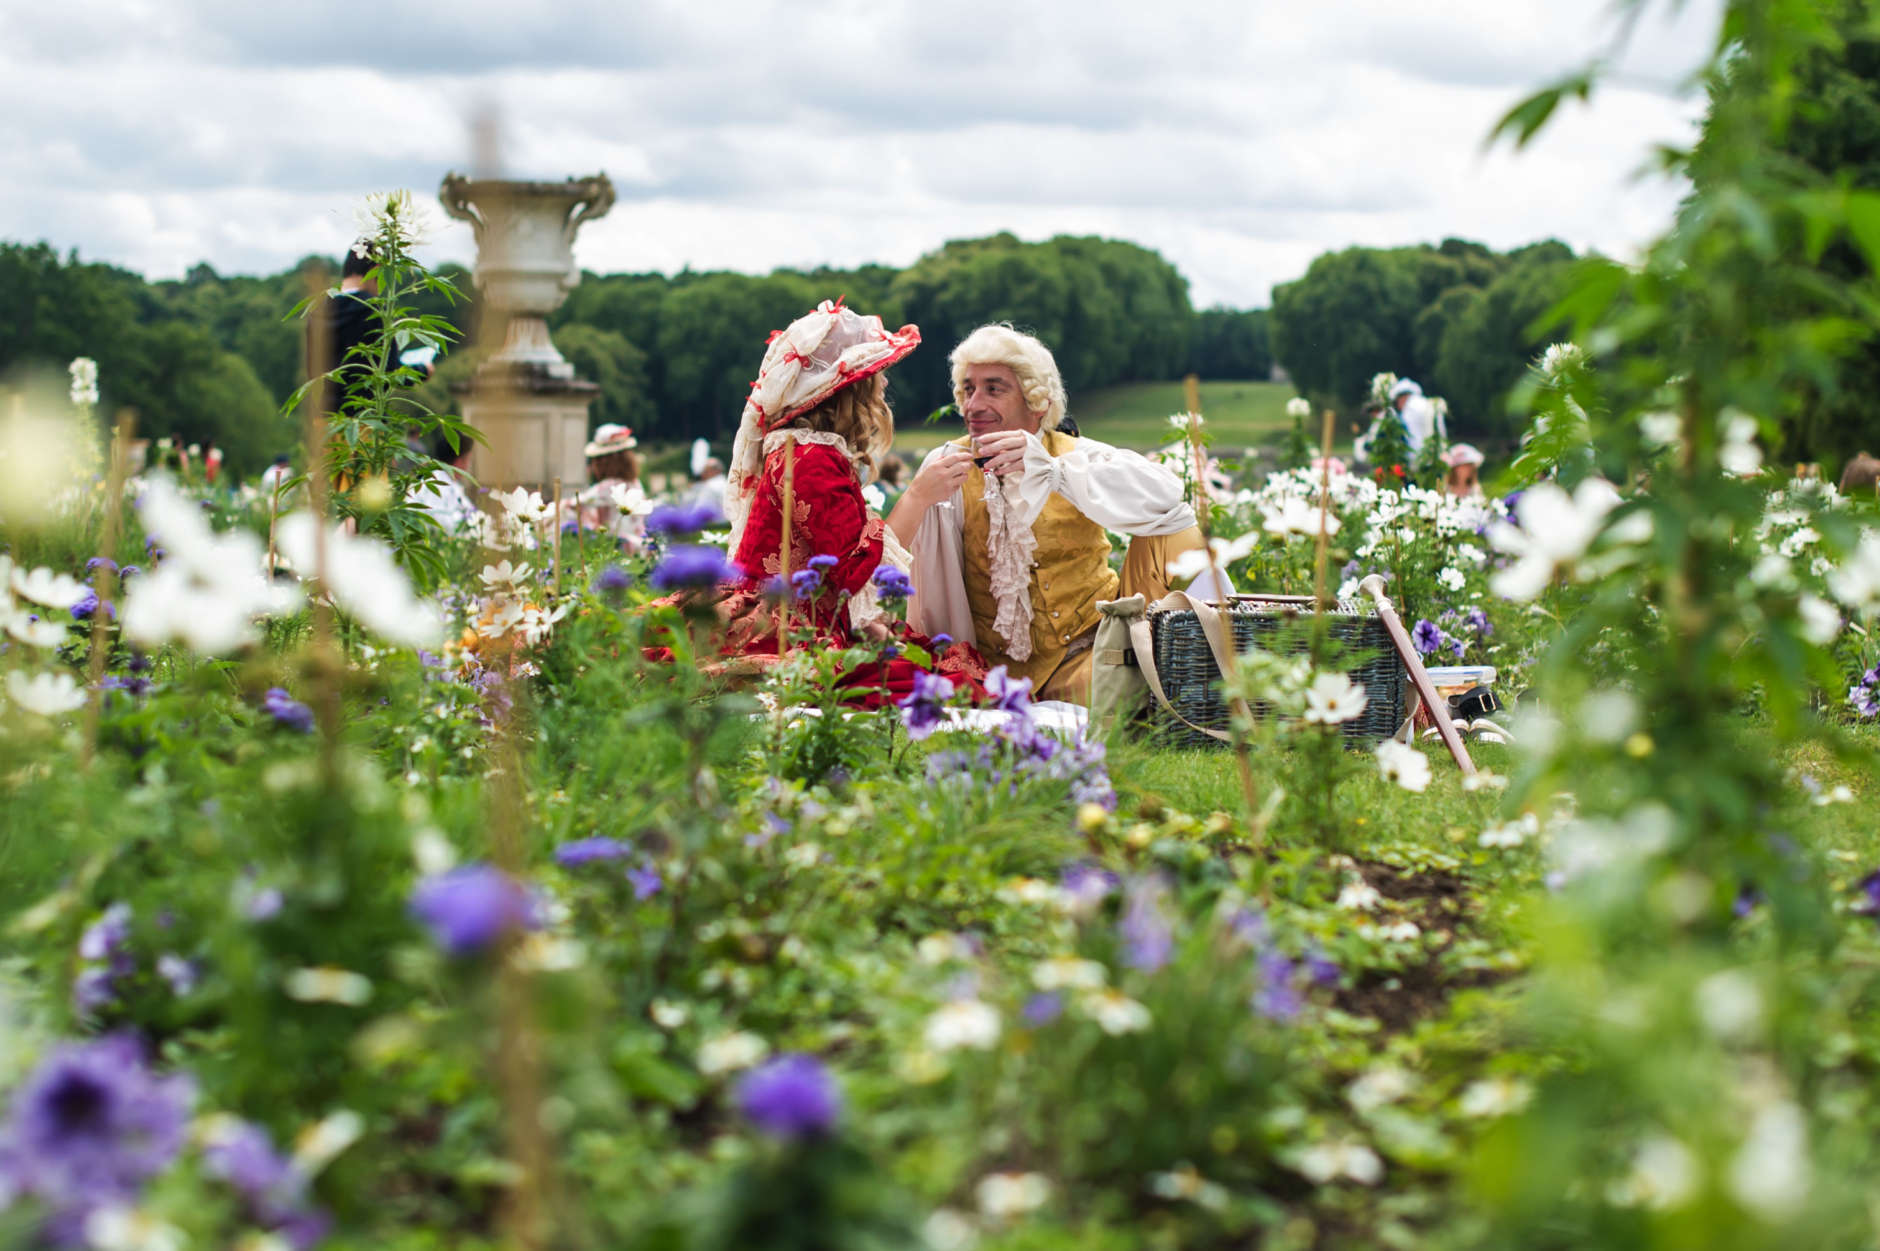 "Visitors Fanny and Patrice wear costumes and lunch in the Vaux-Le-Vicomte castle during the ""Journee Grand Siecle"", the Great Century Day, in Maincy, outside Paris, France, Sunday June 21, 2015. The event aims at recreating King Louis XIV's 17th century atmosphere in the castle and its gardens. (AP Photo/Kamil Zihnioglu)"